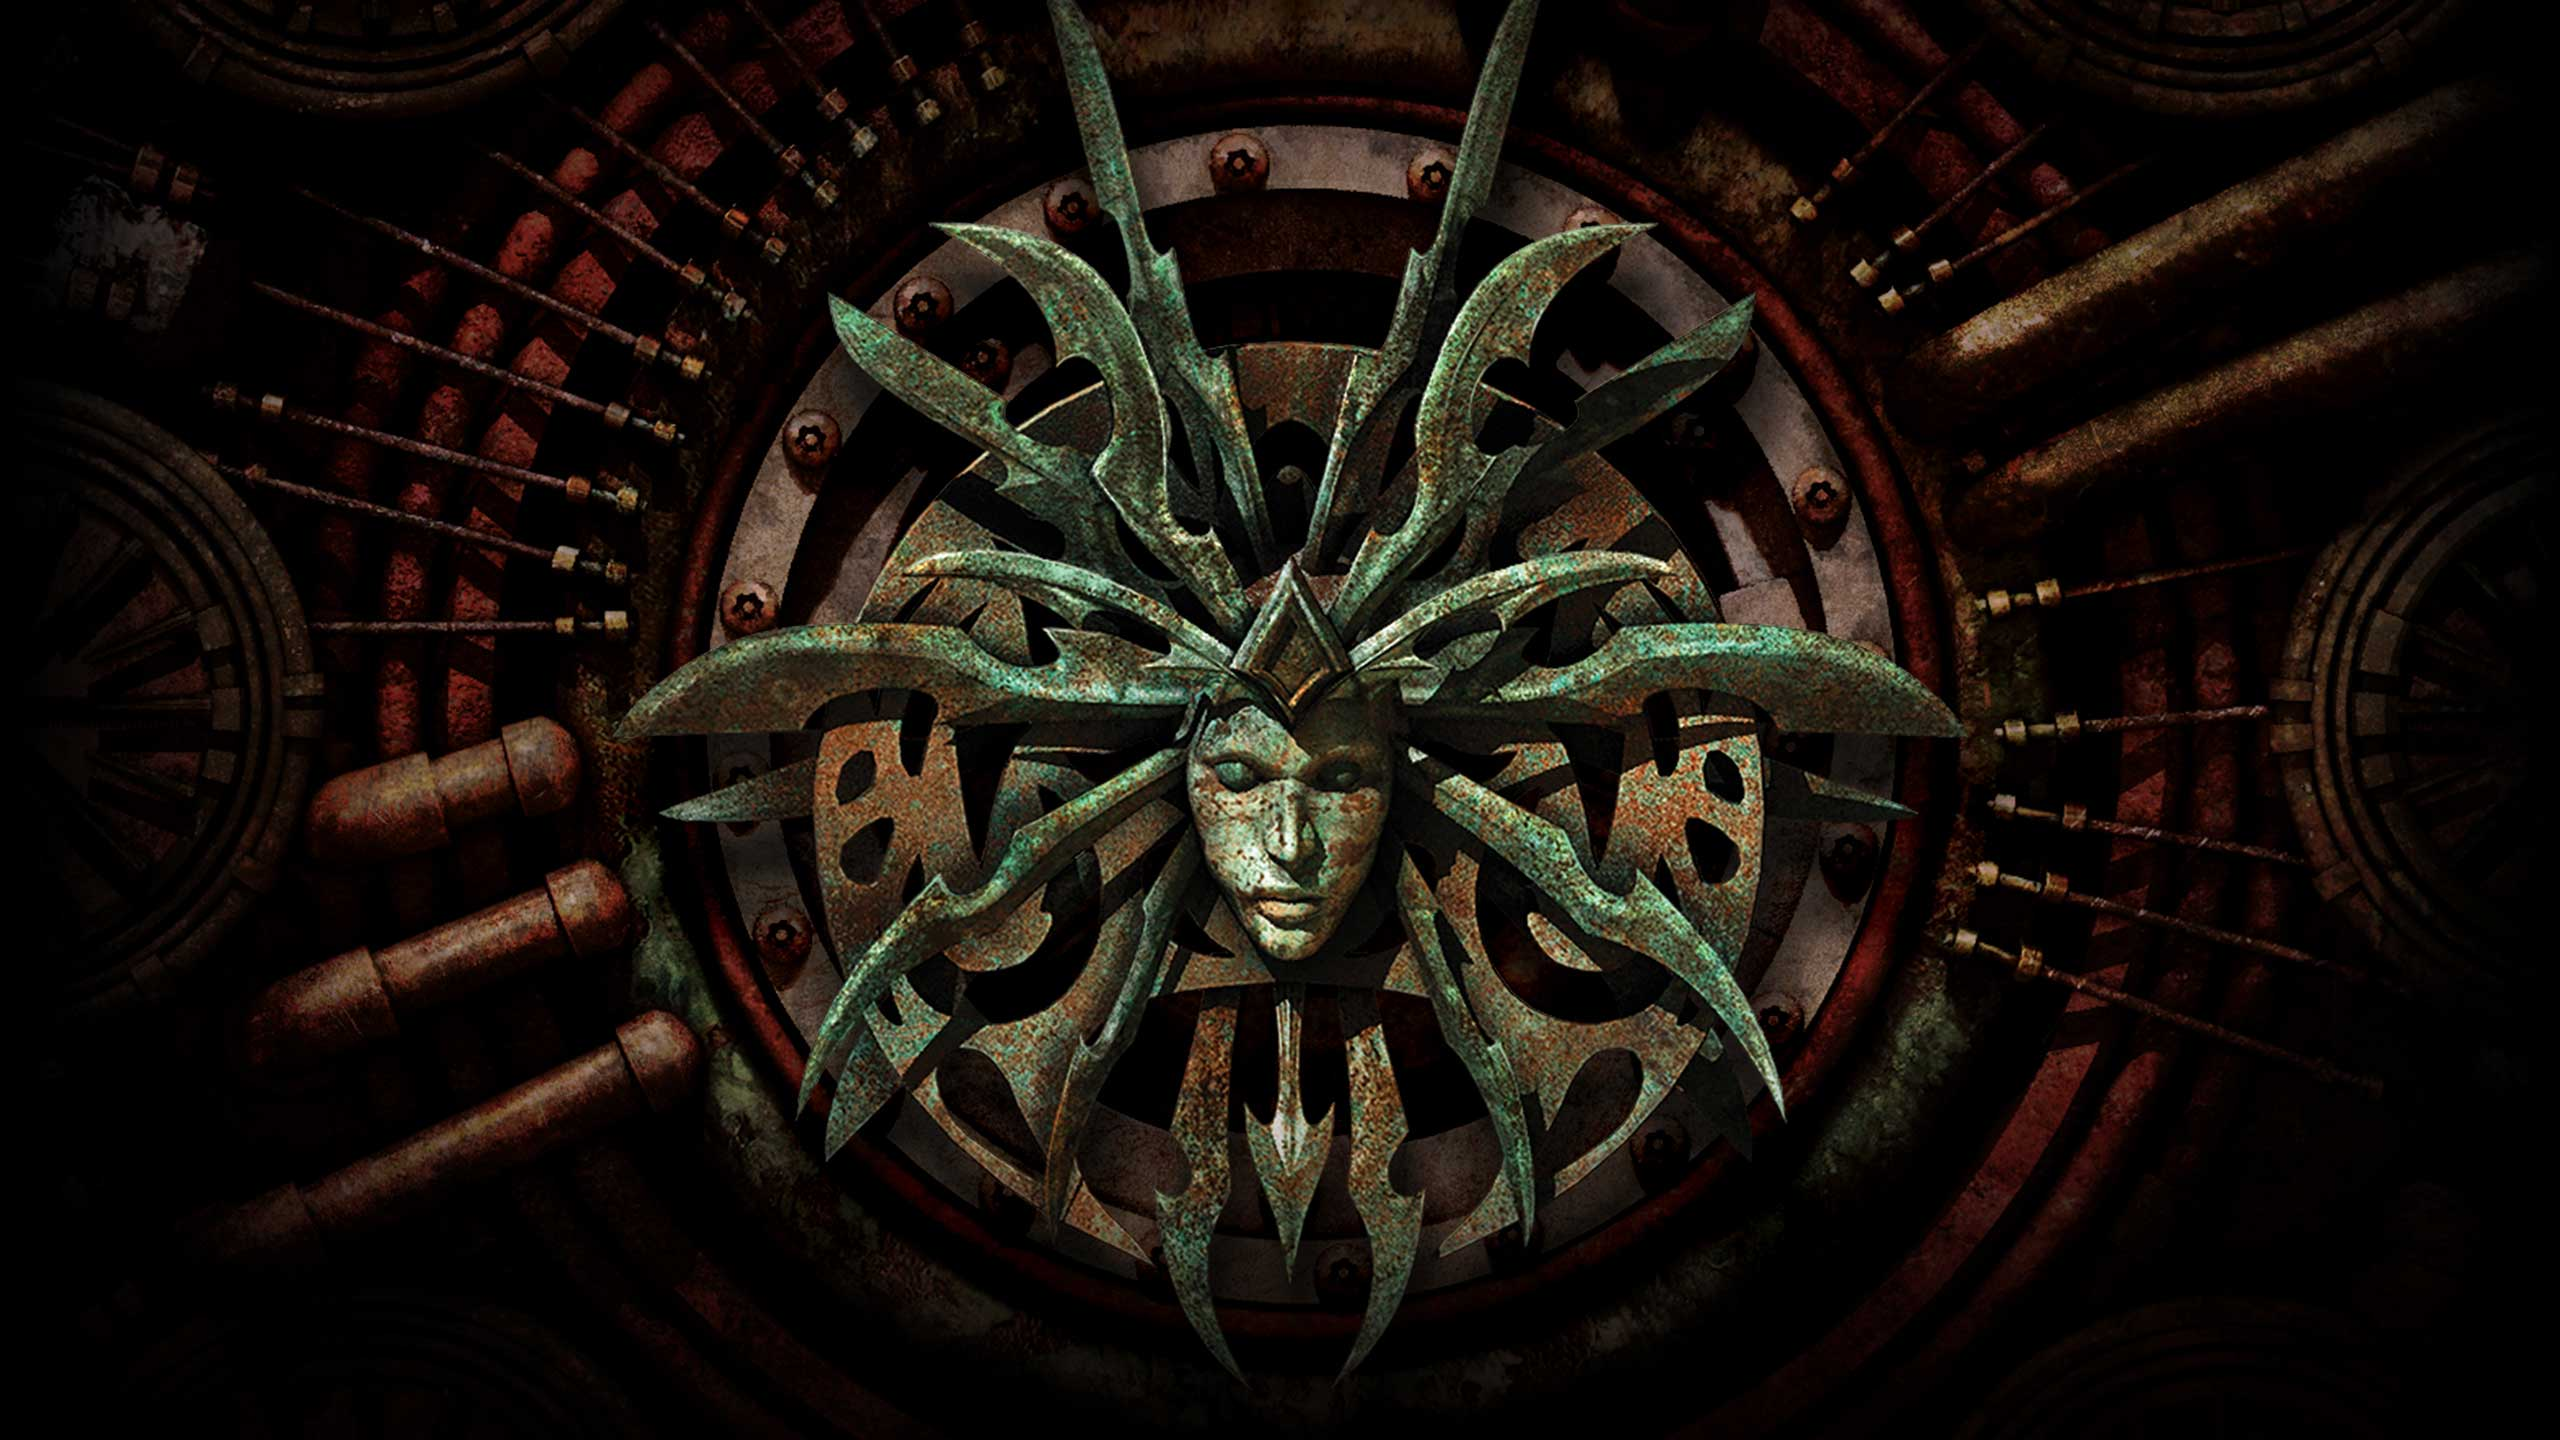 Lady of Pain, Planescape Torment Enhanced Edition Promotional BG on www.planescape.com